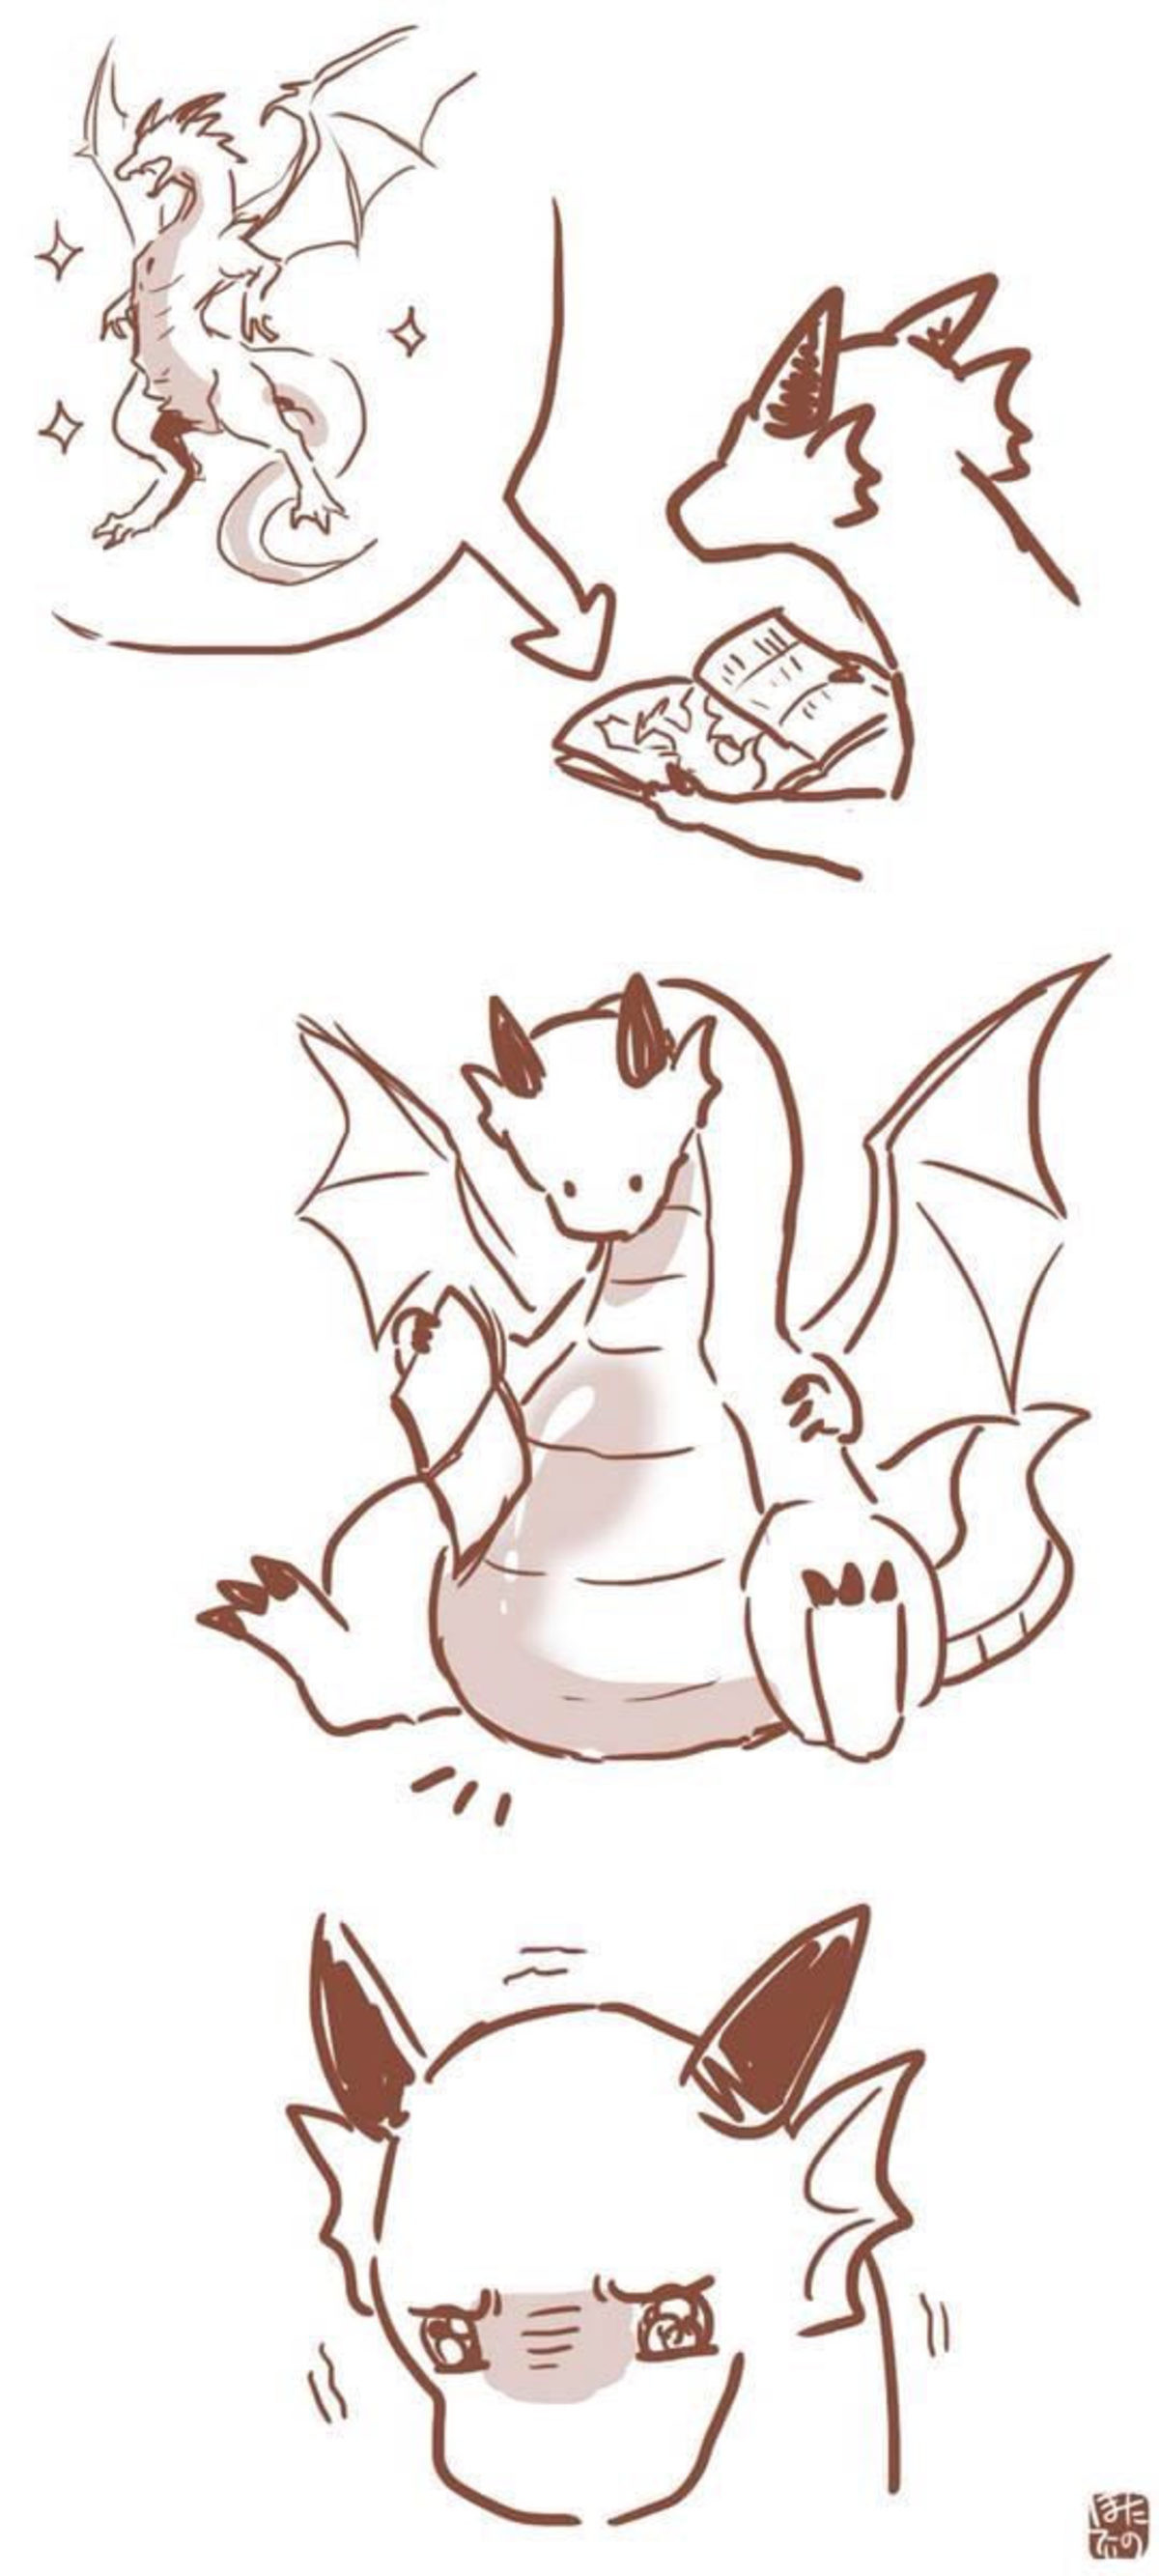 pudge. .. Best kind of dragons to cuddle, smooth scales, plump and jolly, none of that angry ass crag dragon